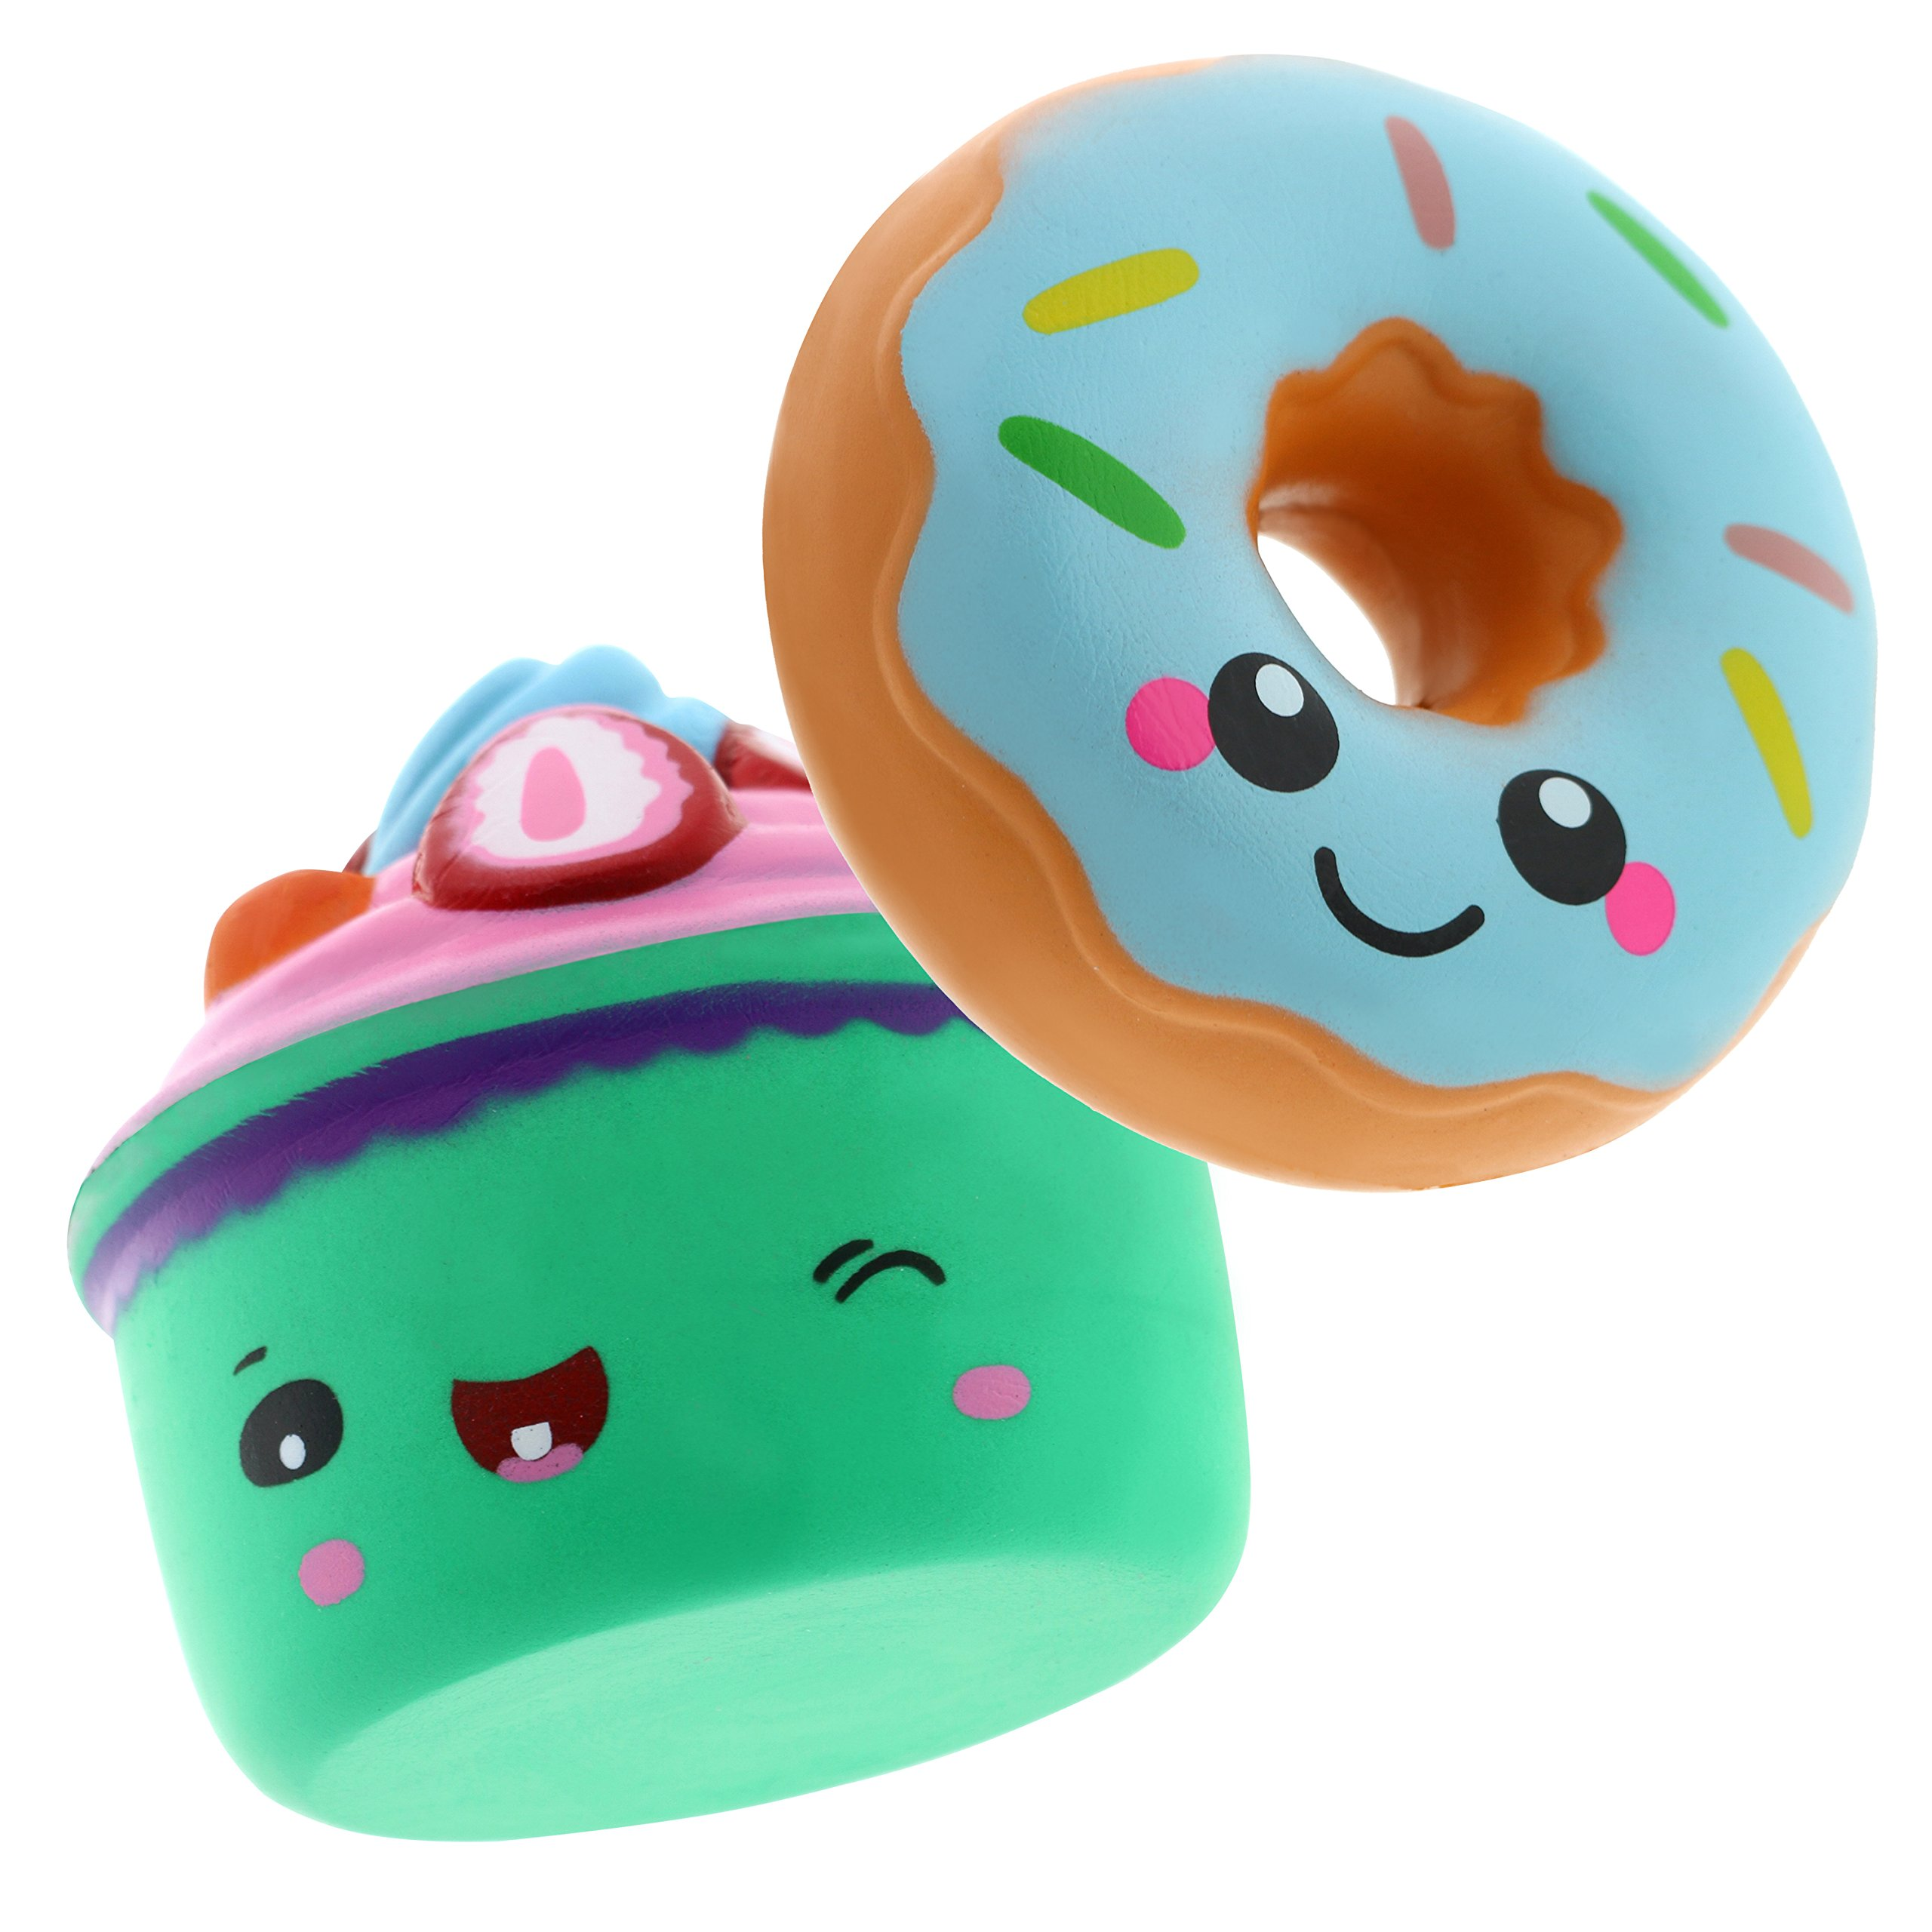 Squishin' Fun Slow Rising Jumbo Kawaii 2 Pack Squishies - Scented Mochi Squishy Toys, Stress Relief Toy, Party Favors for Kids & Adults Blue Dessert Edition, Blue Strawberry Cake & Blue Glazed Donut